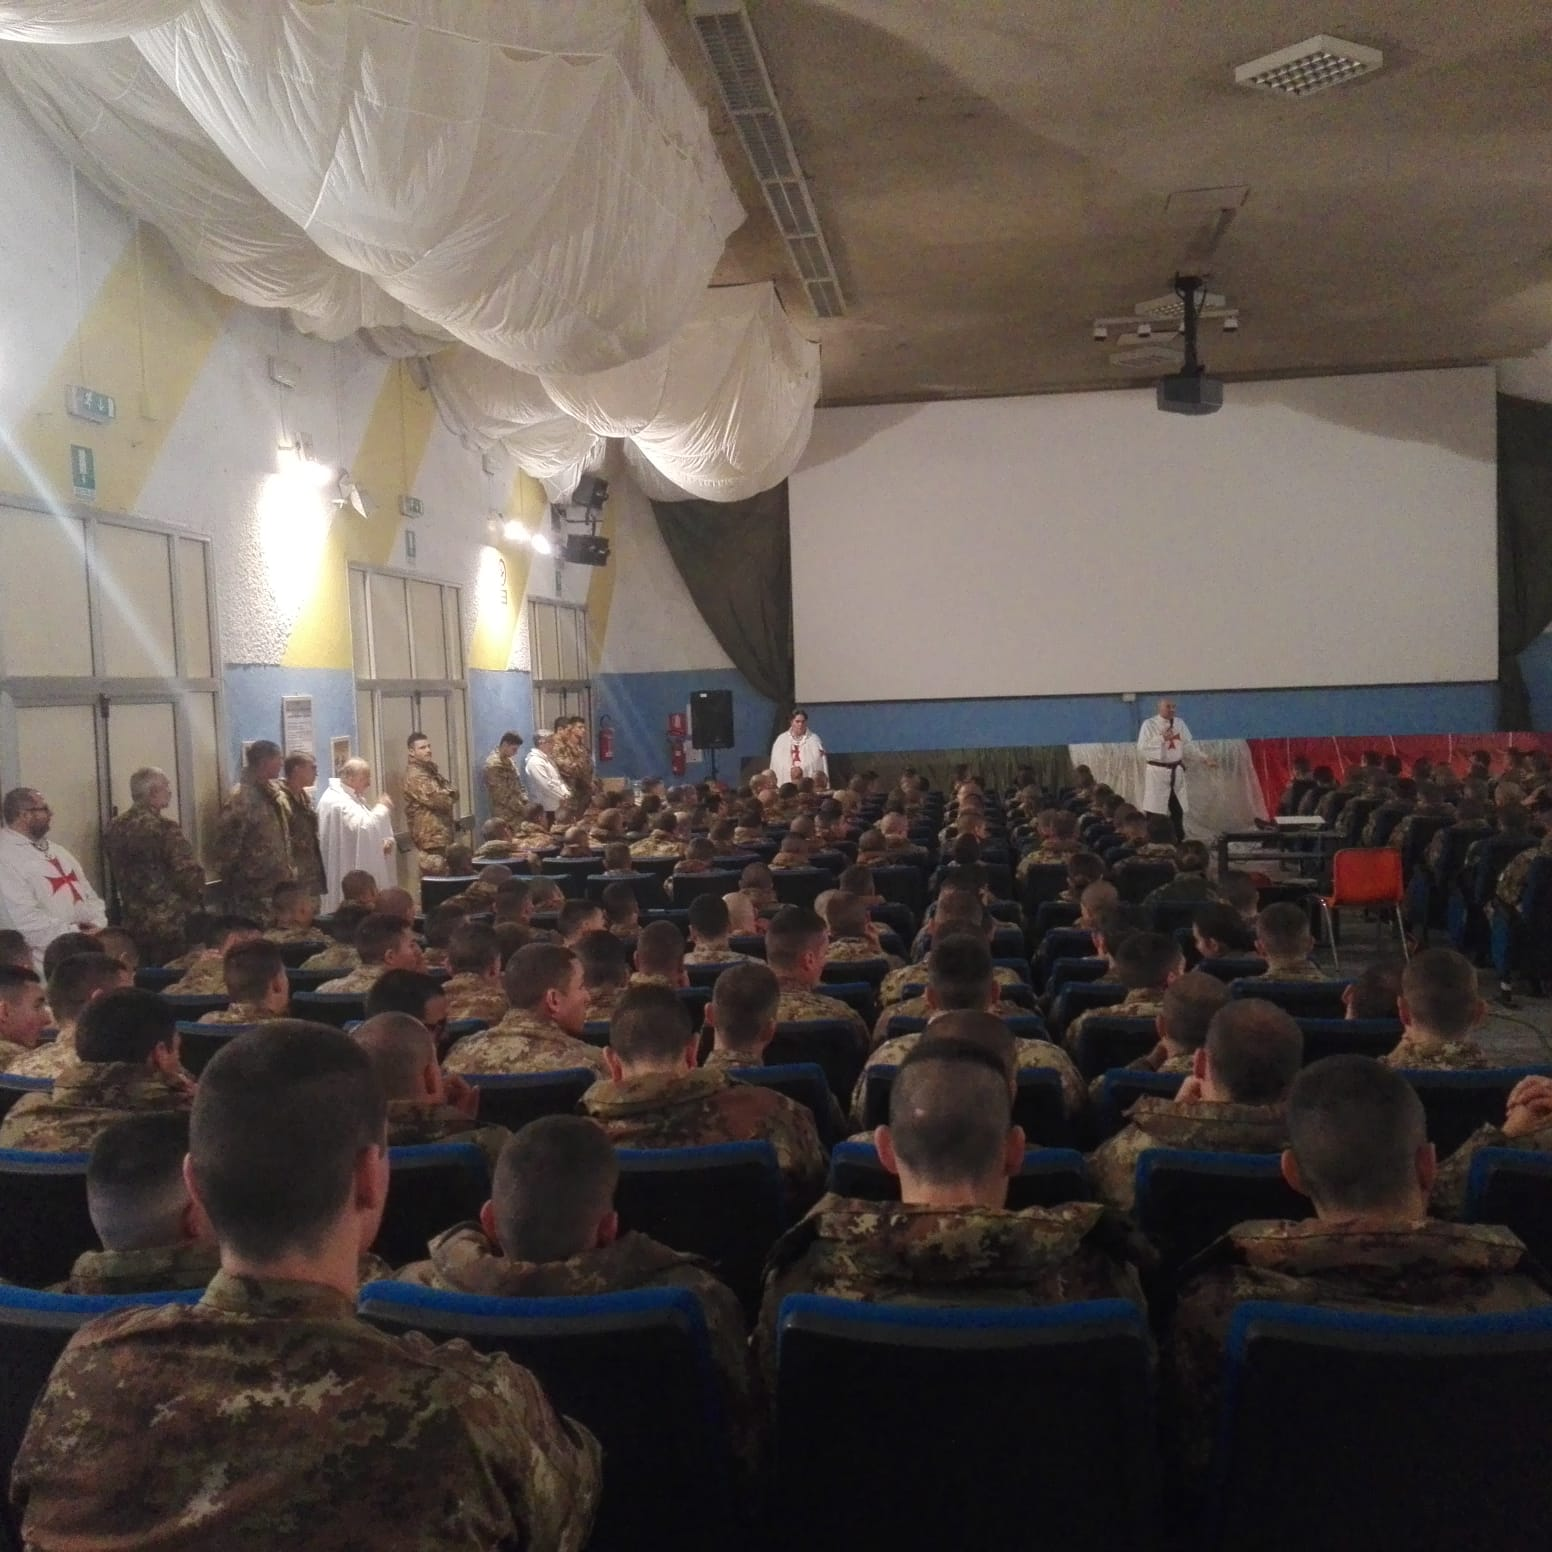 Conference on the Templars at the Italian Military Skydiving training center barracks in Pisa (Italy)